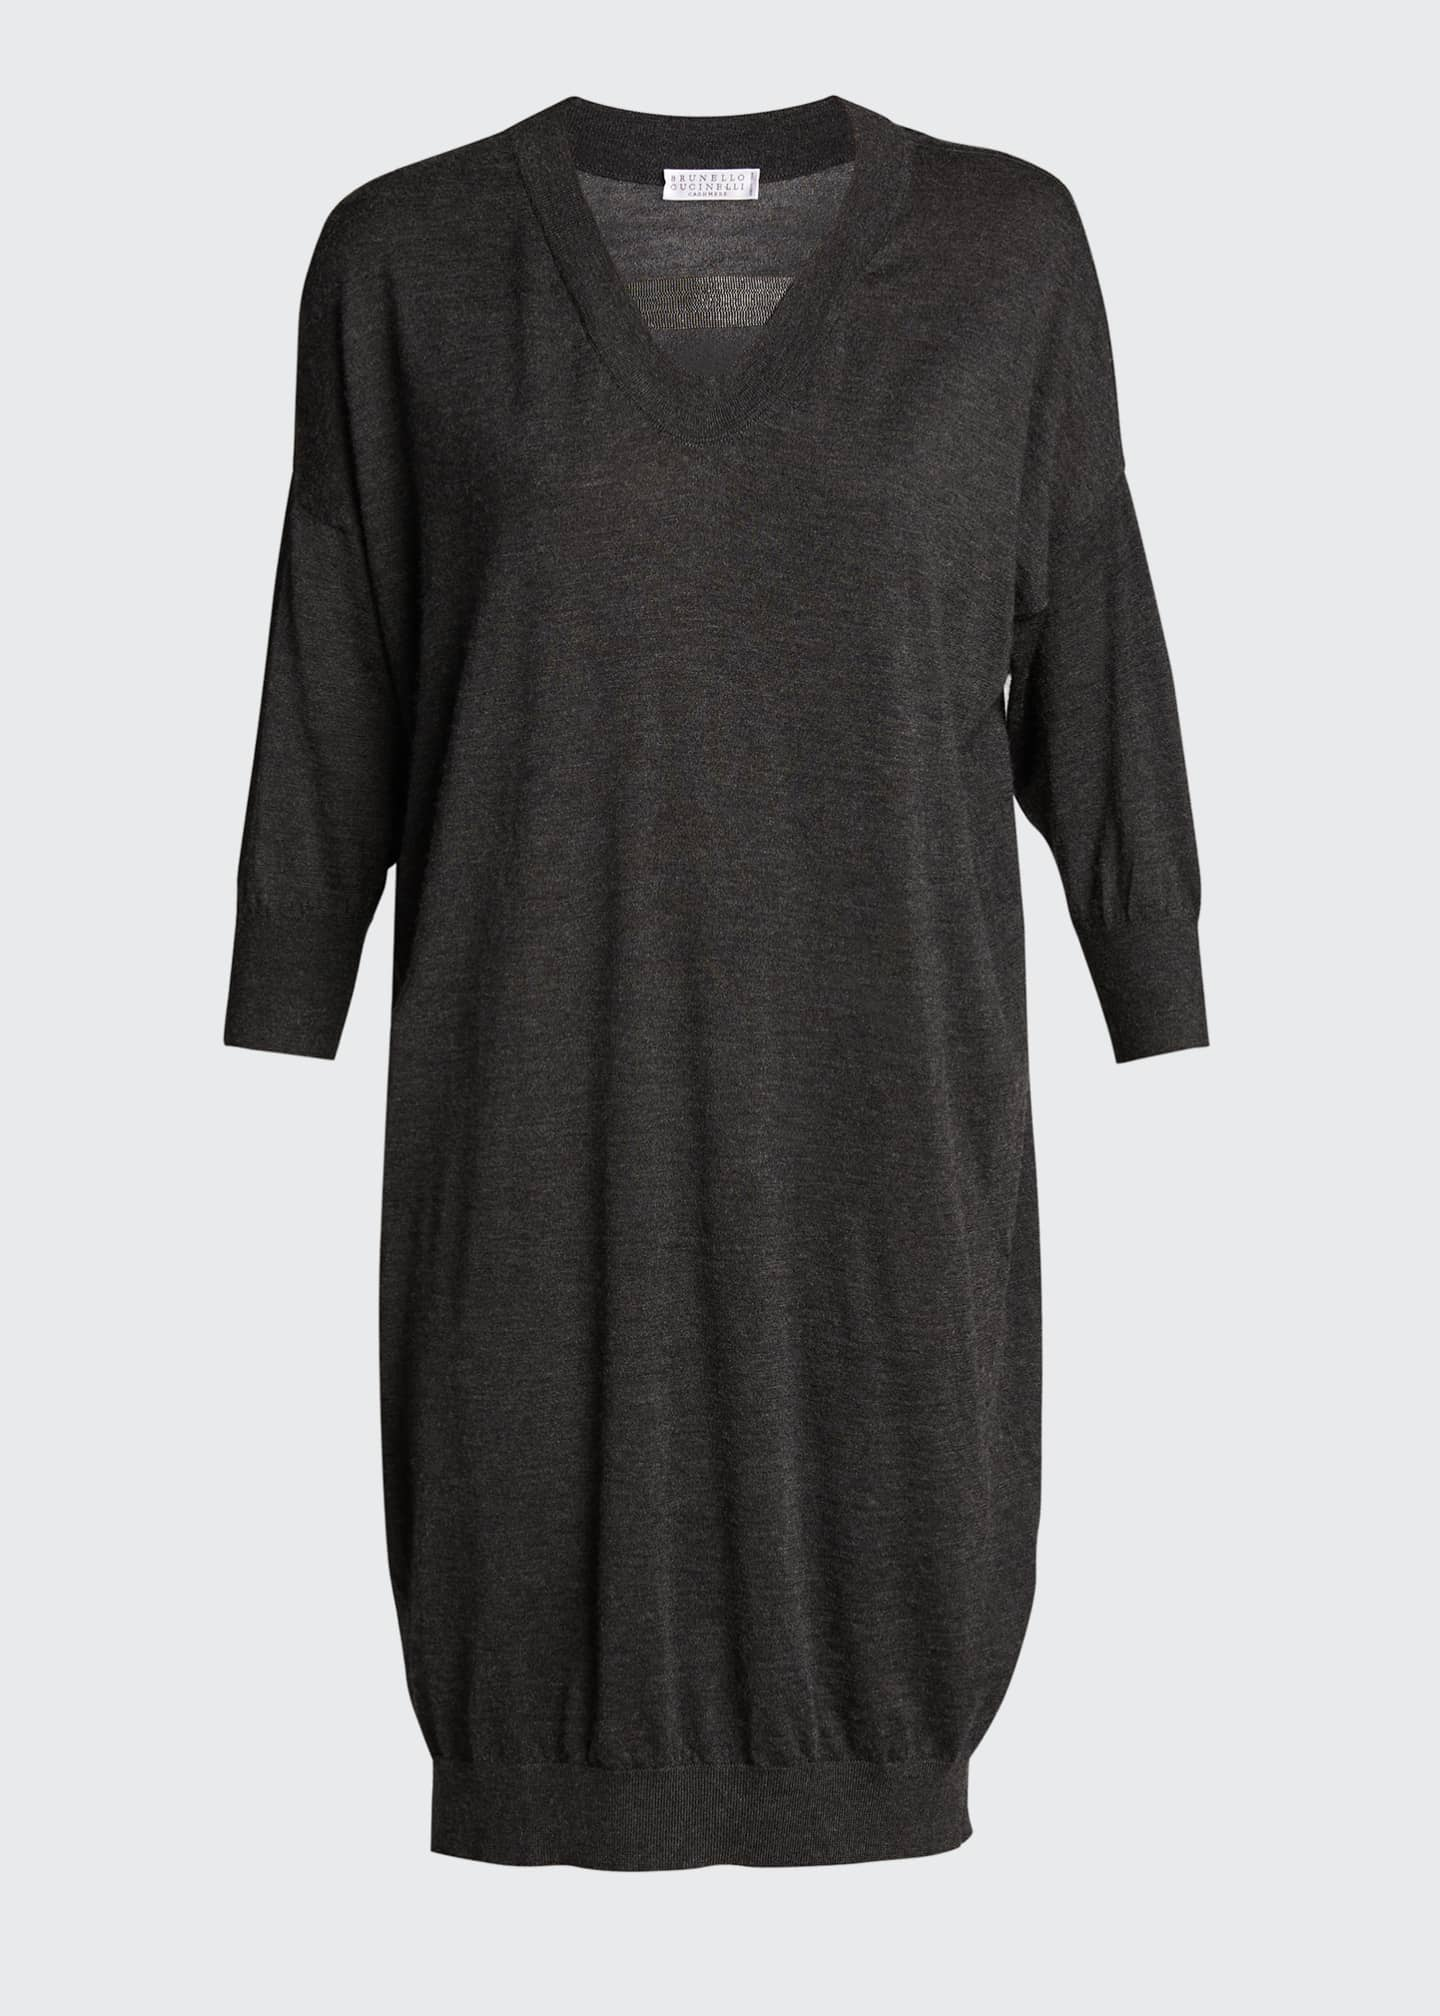 Image 5 of 5: Cashmere Silk Knit Dress with Monili Strap